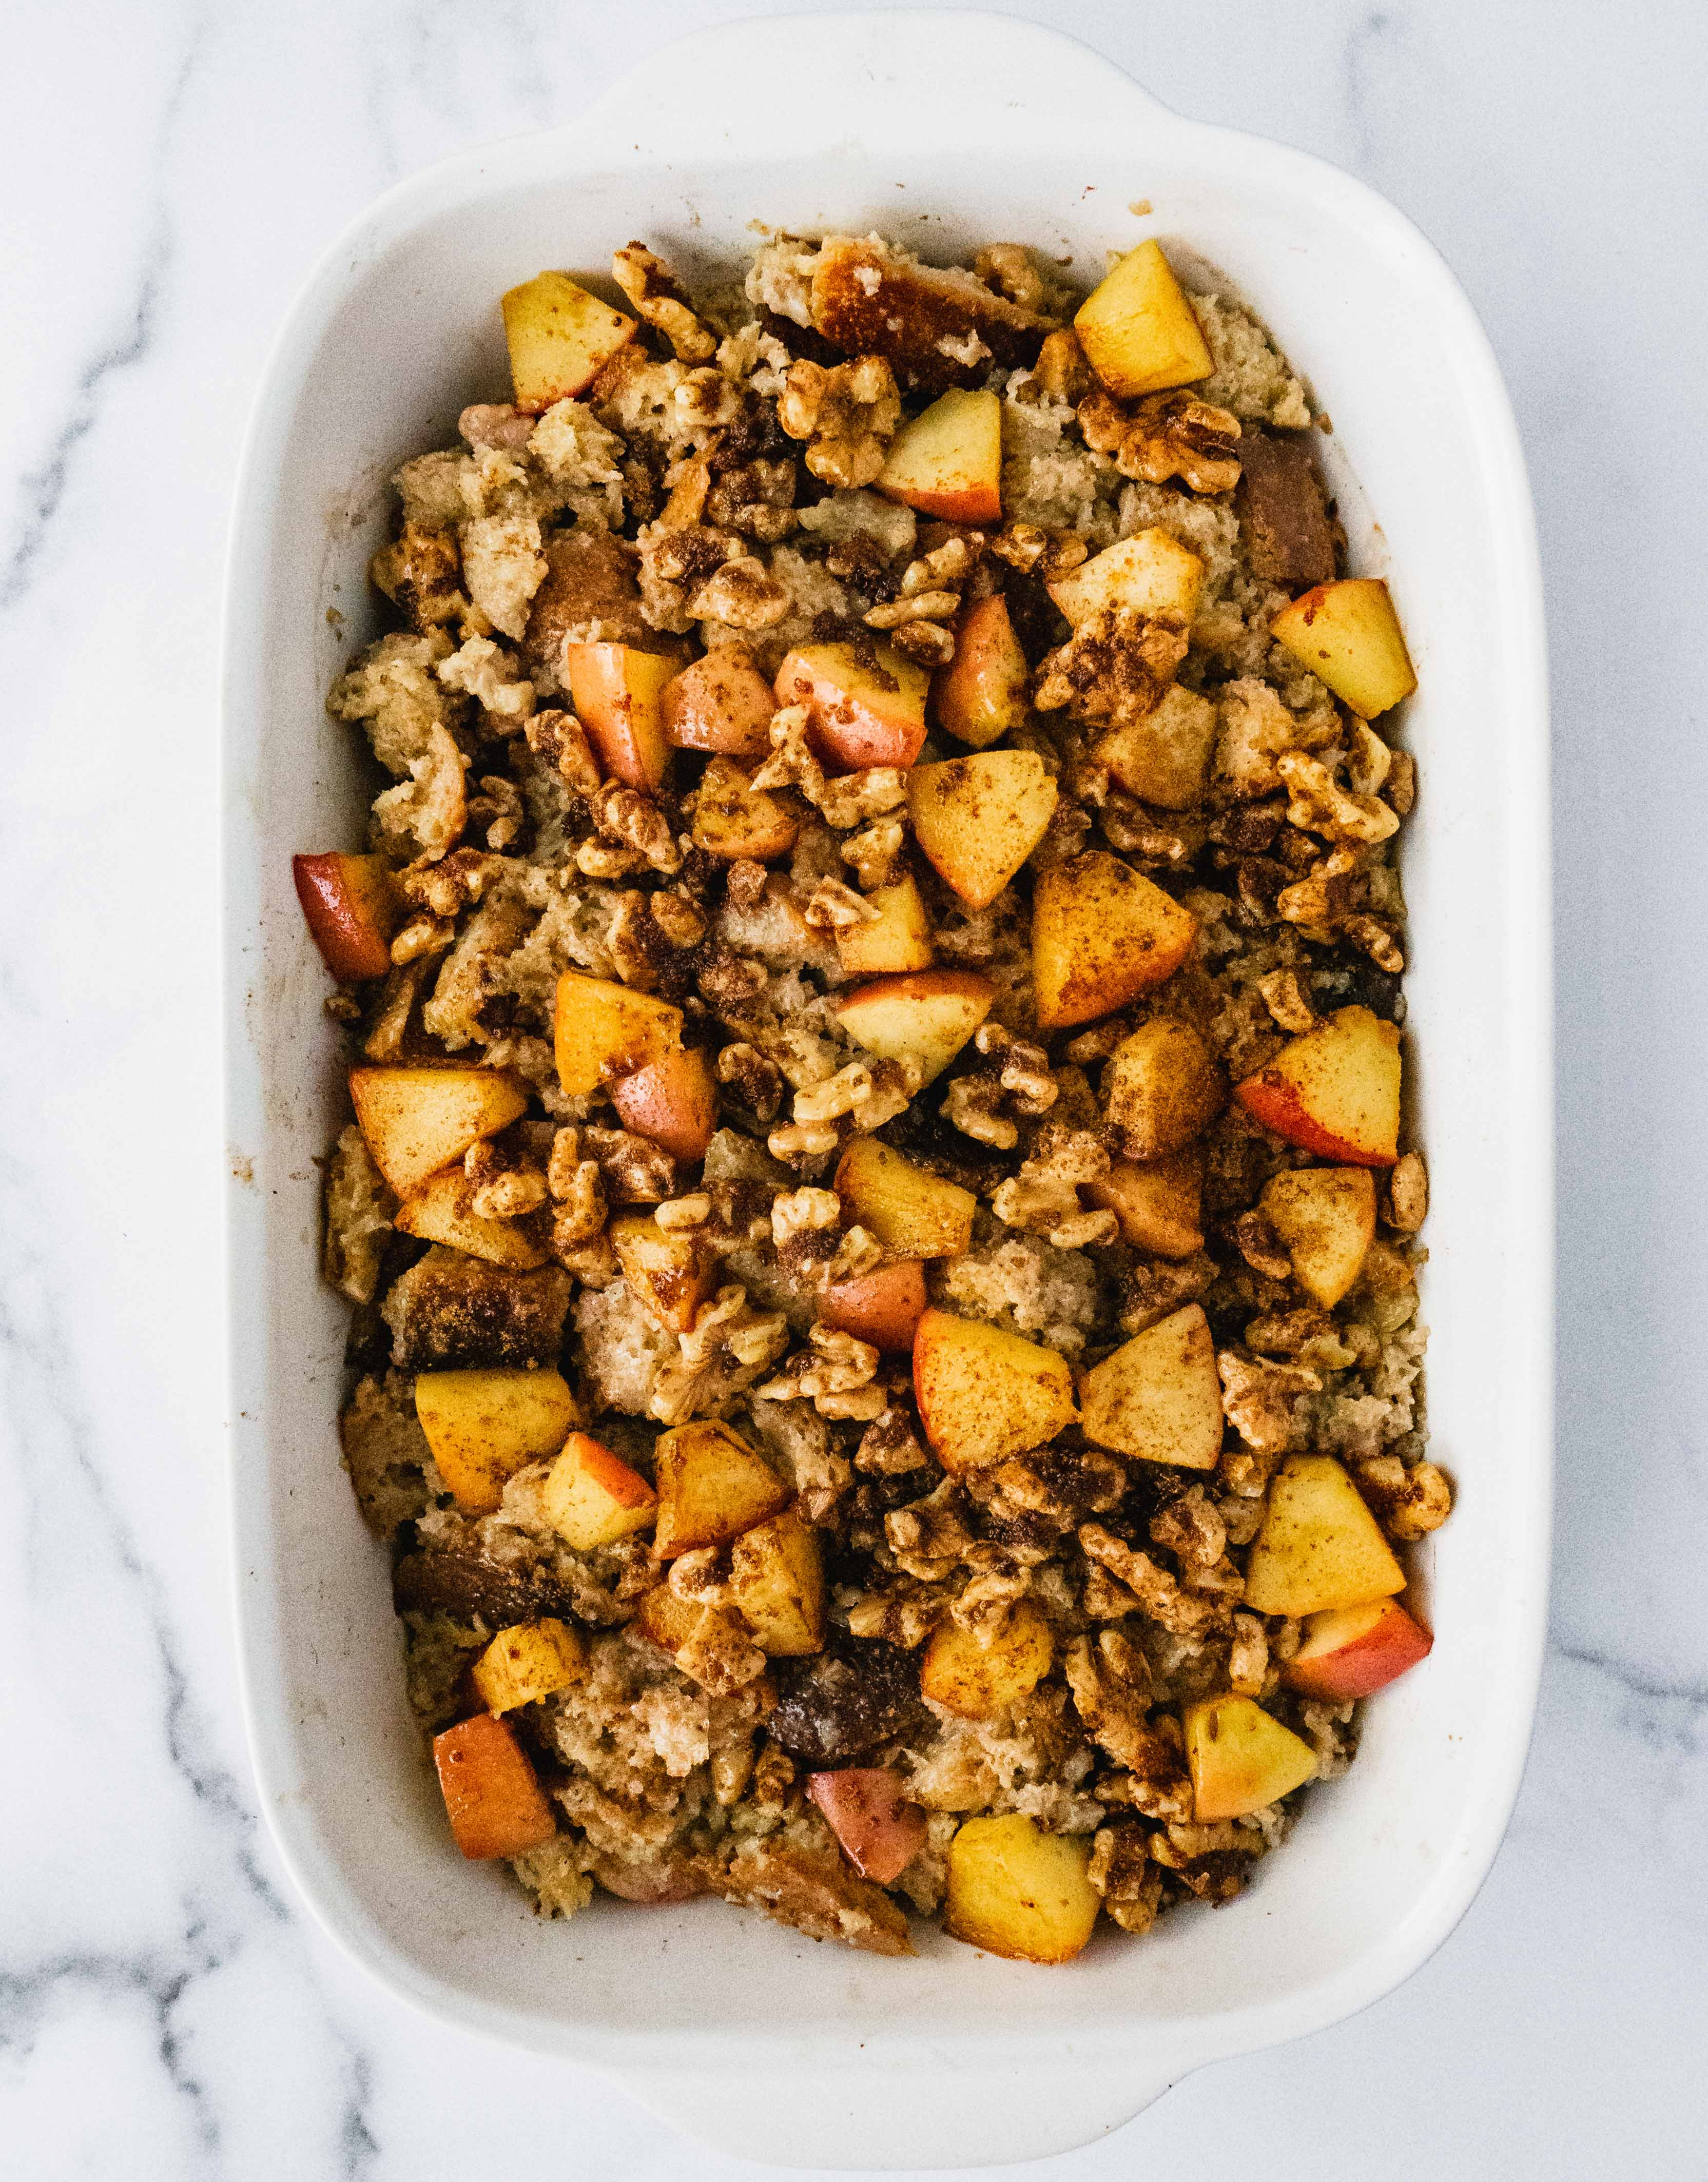 A pan of baked french toast casserole topped with sautted cinnamon apples